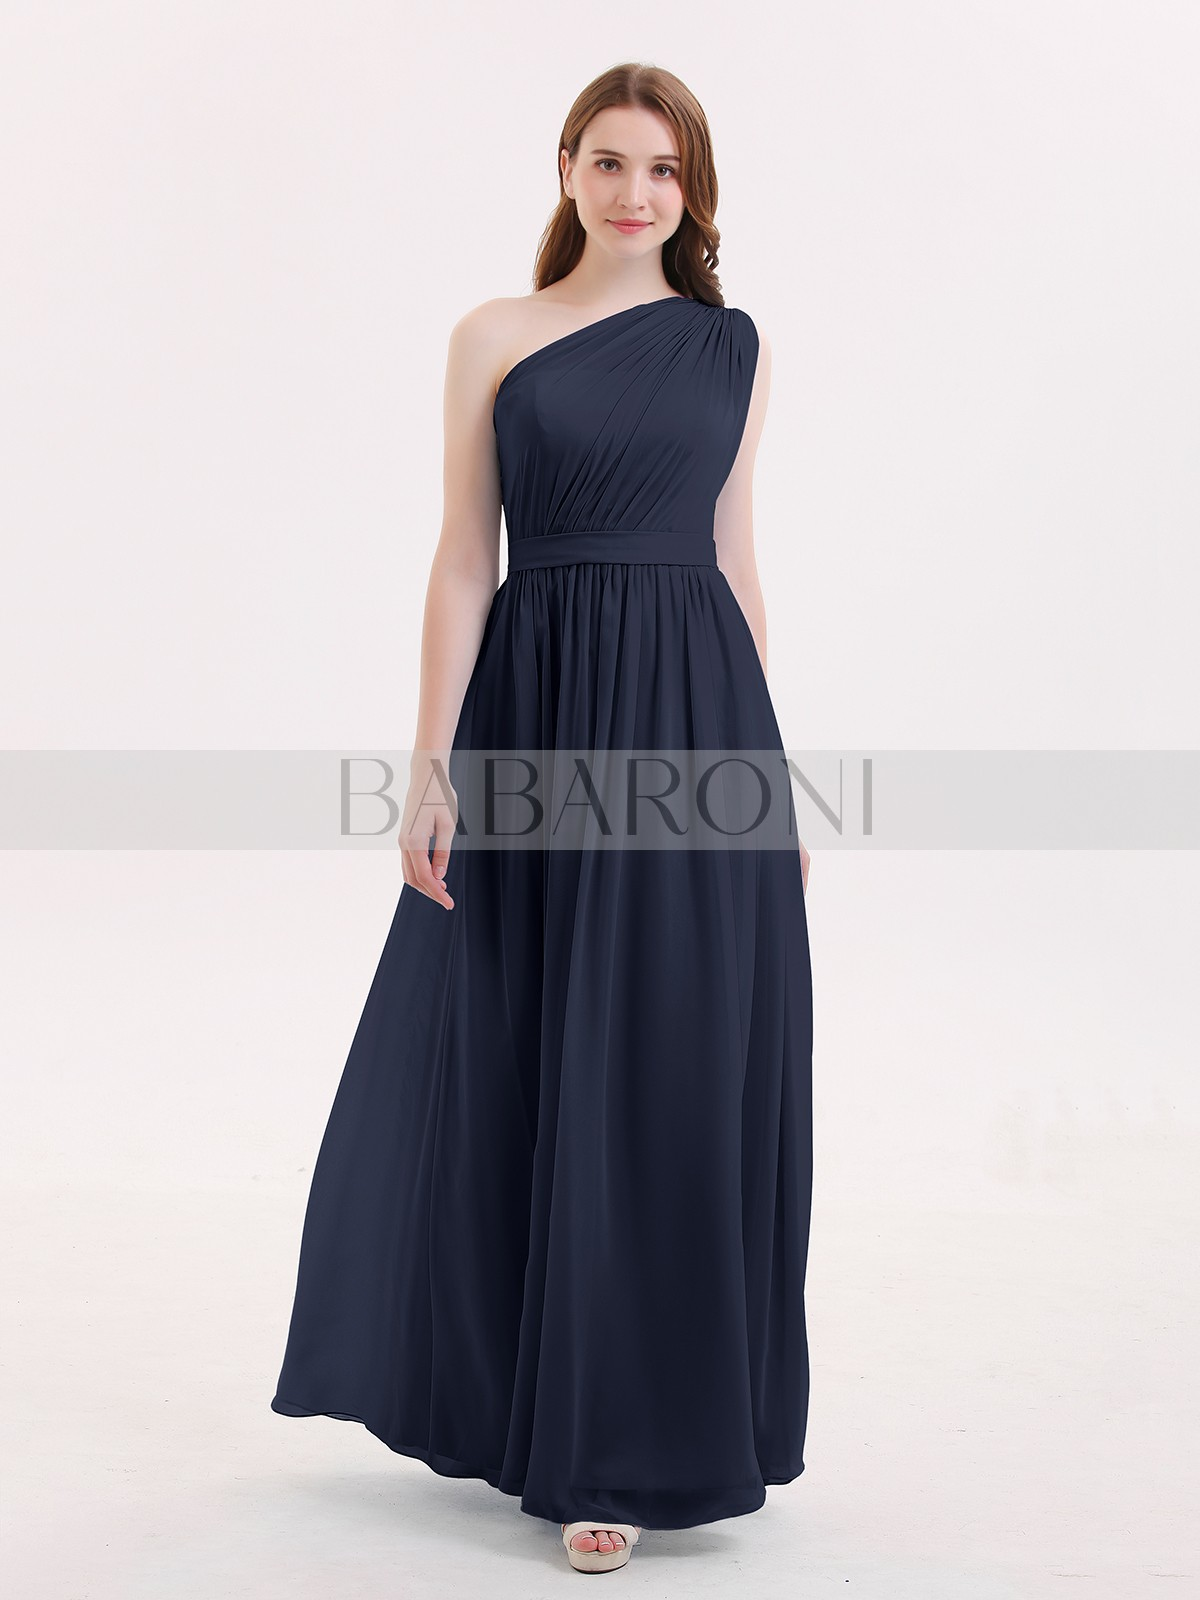 167deabf37425 ... Long Bridesmaid Dresses; Babaroni Maggie. A-line Chiffon Dark Navy  Zipper Side Ruffle, Pleated Floor-length One Shoulder. Loading zoom